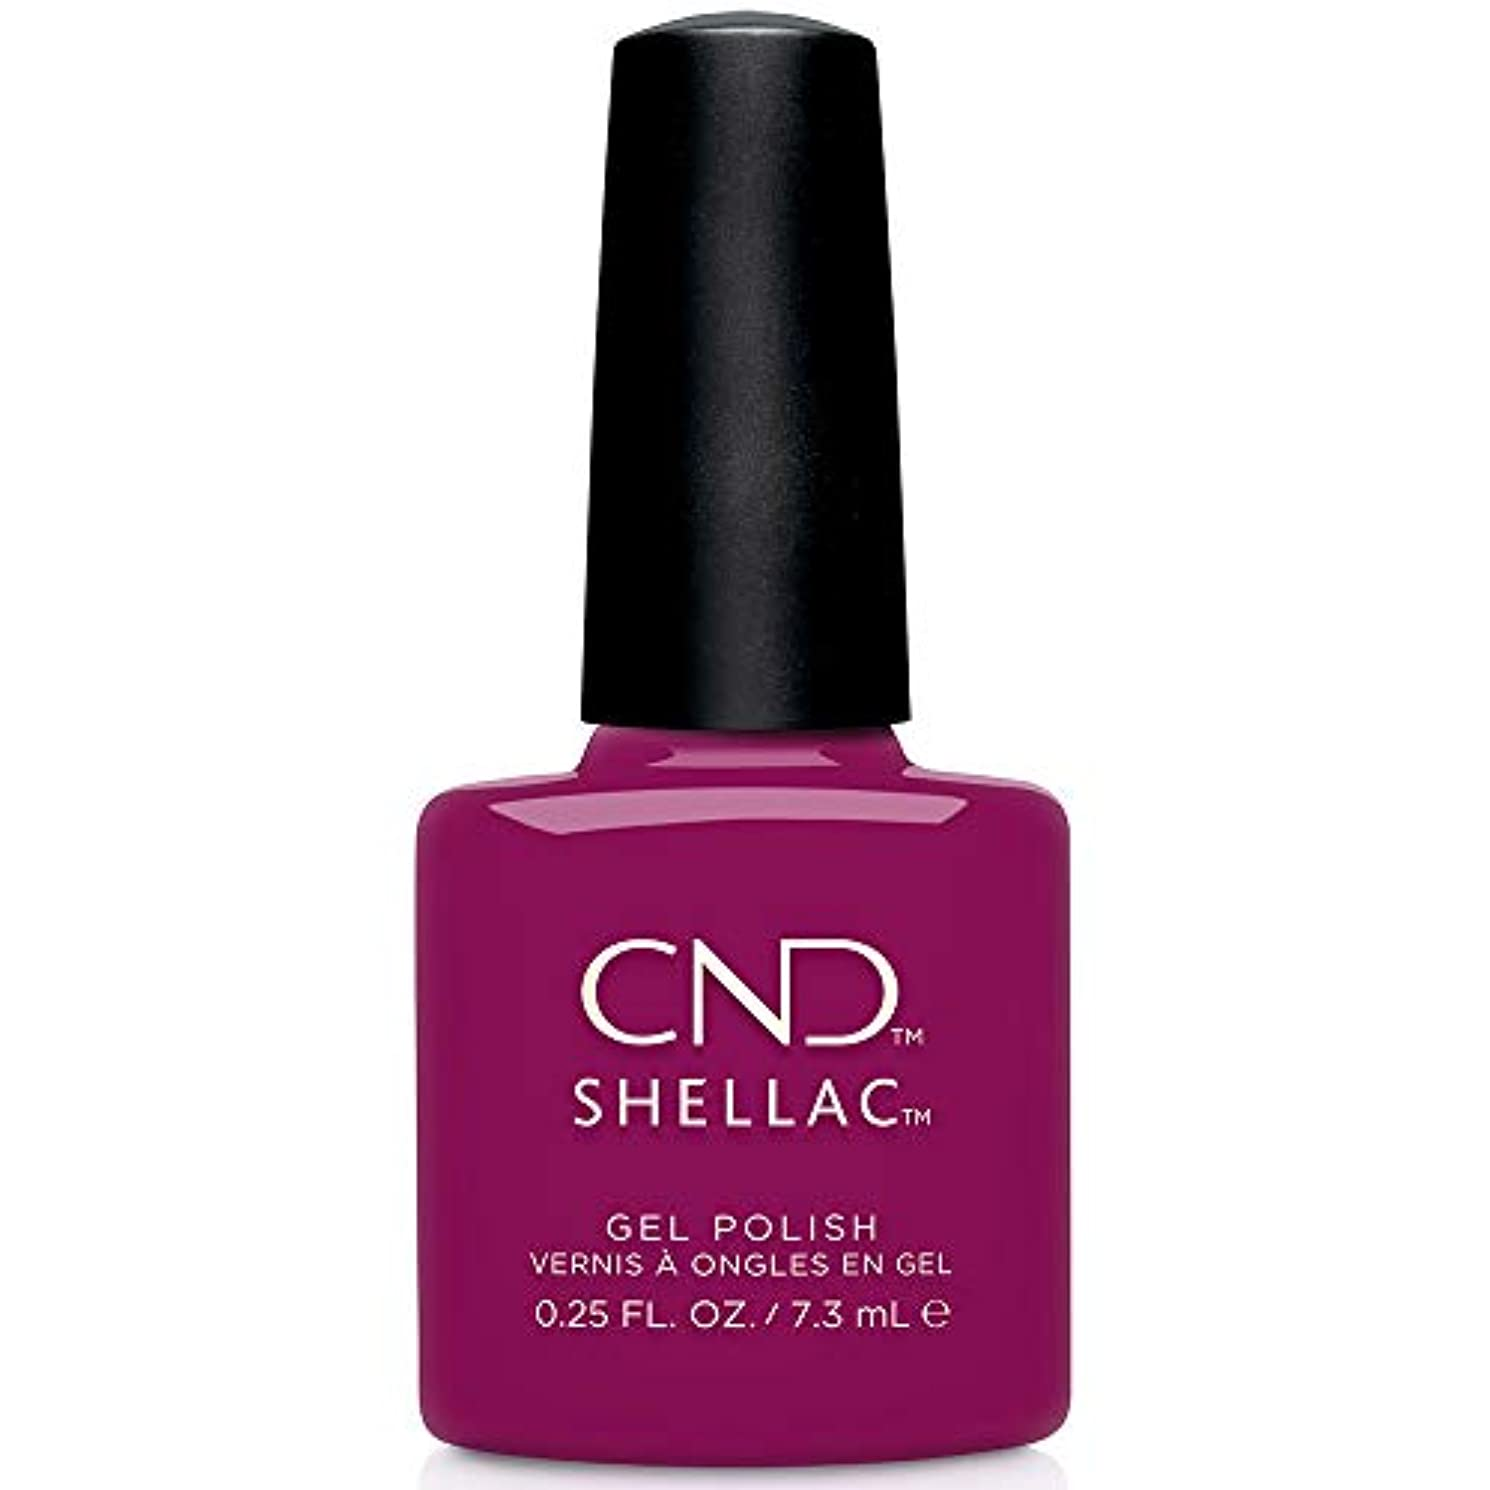 CND Shellac - Treasured Moments Fall 2019 Collection - Secret Diary - 0.25oz / 7.3ml